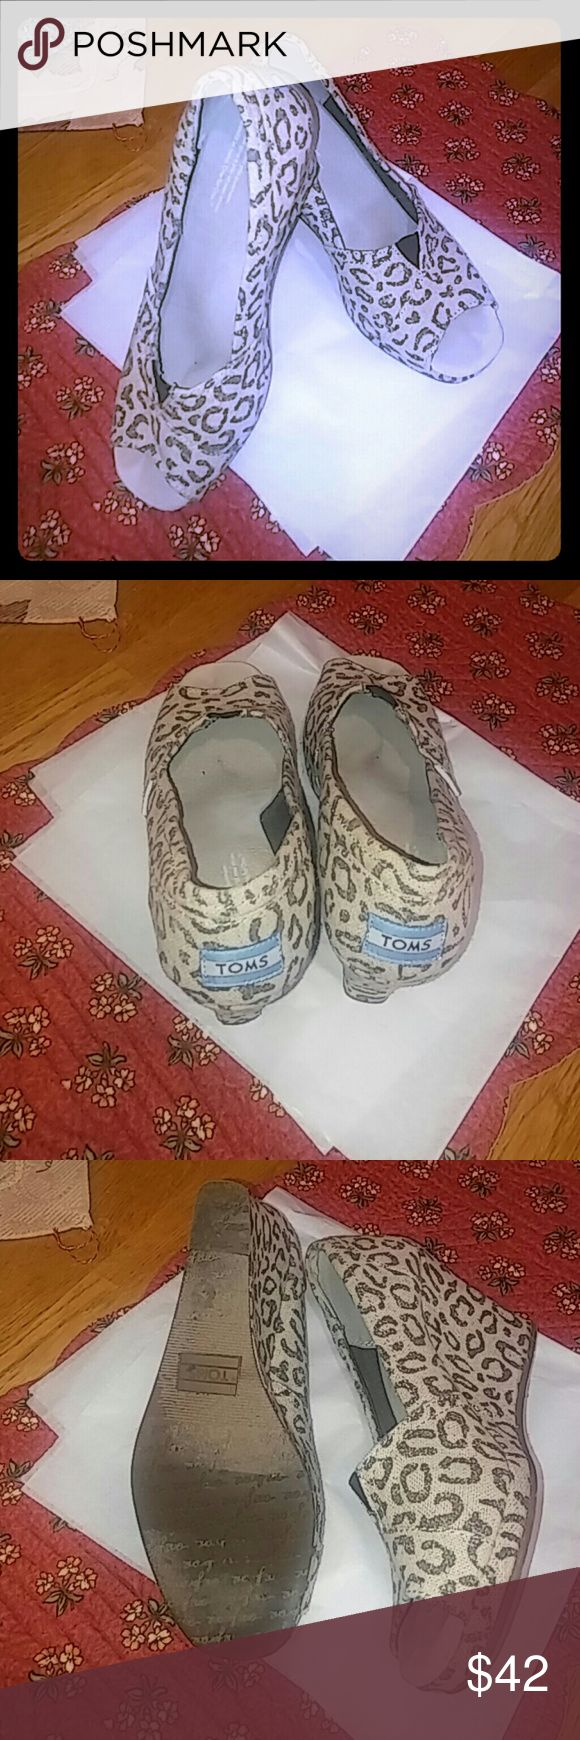 "TOM'S wedge open toe shoes EUC 6.5 wide width Gorgeous animal print wedge shoes natural with brown. Excellent condition and although high they are comfortable to wear because of the 2 3/4"" wedge.  6.5 wide width. Toms Shoes Wedges"